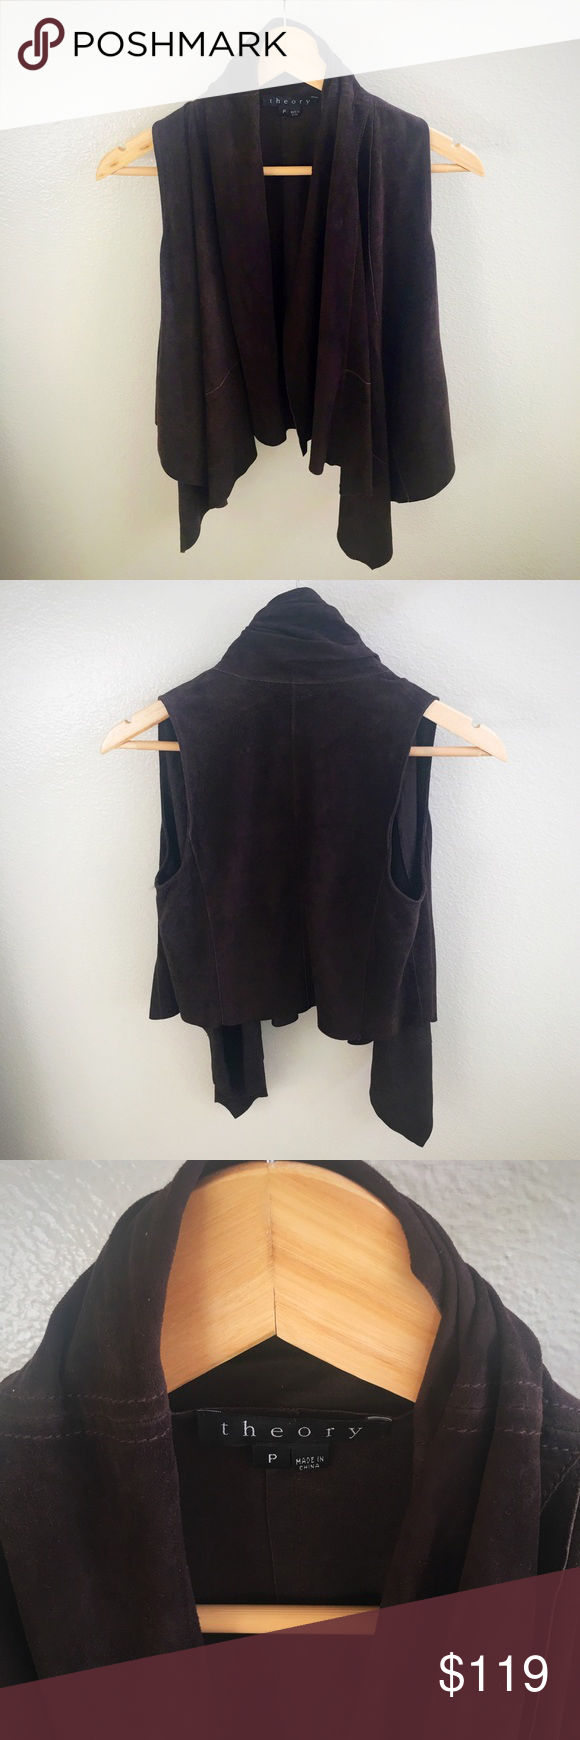 theory Genuine Leather Odelina Vest theory brand Boho Babe style espresso leather waterfall vest in size Petite. Elegant draping and rich color! Can be styled up or down, pairs well over a tight sweater dress or henley with jeans. *Perfect condition Theory Jackets & Coats Vests